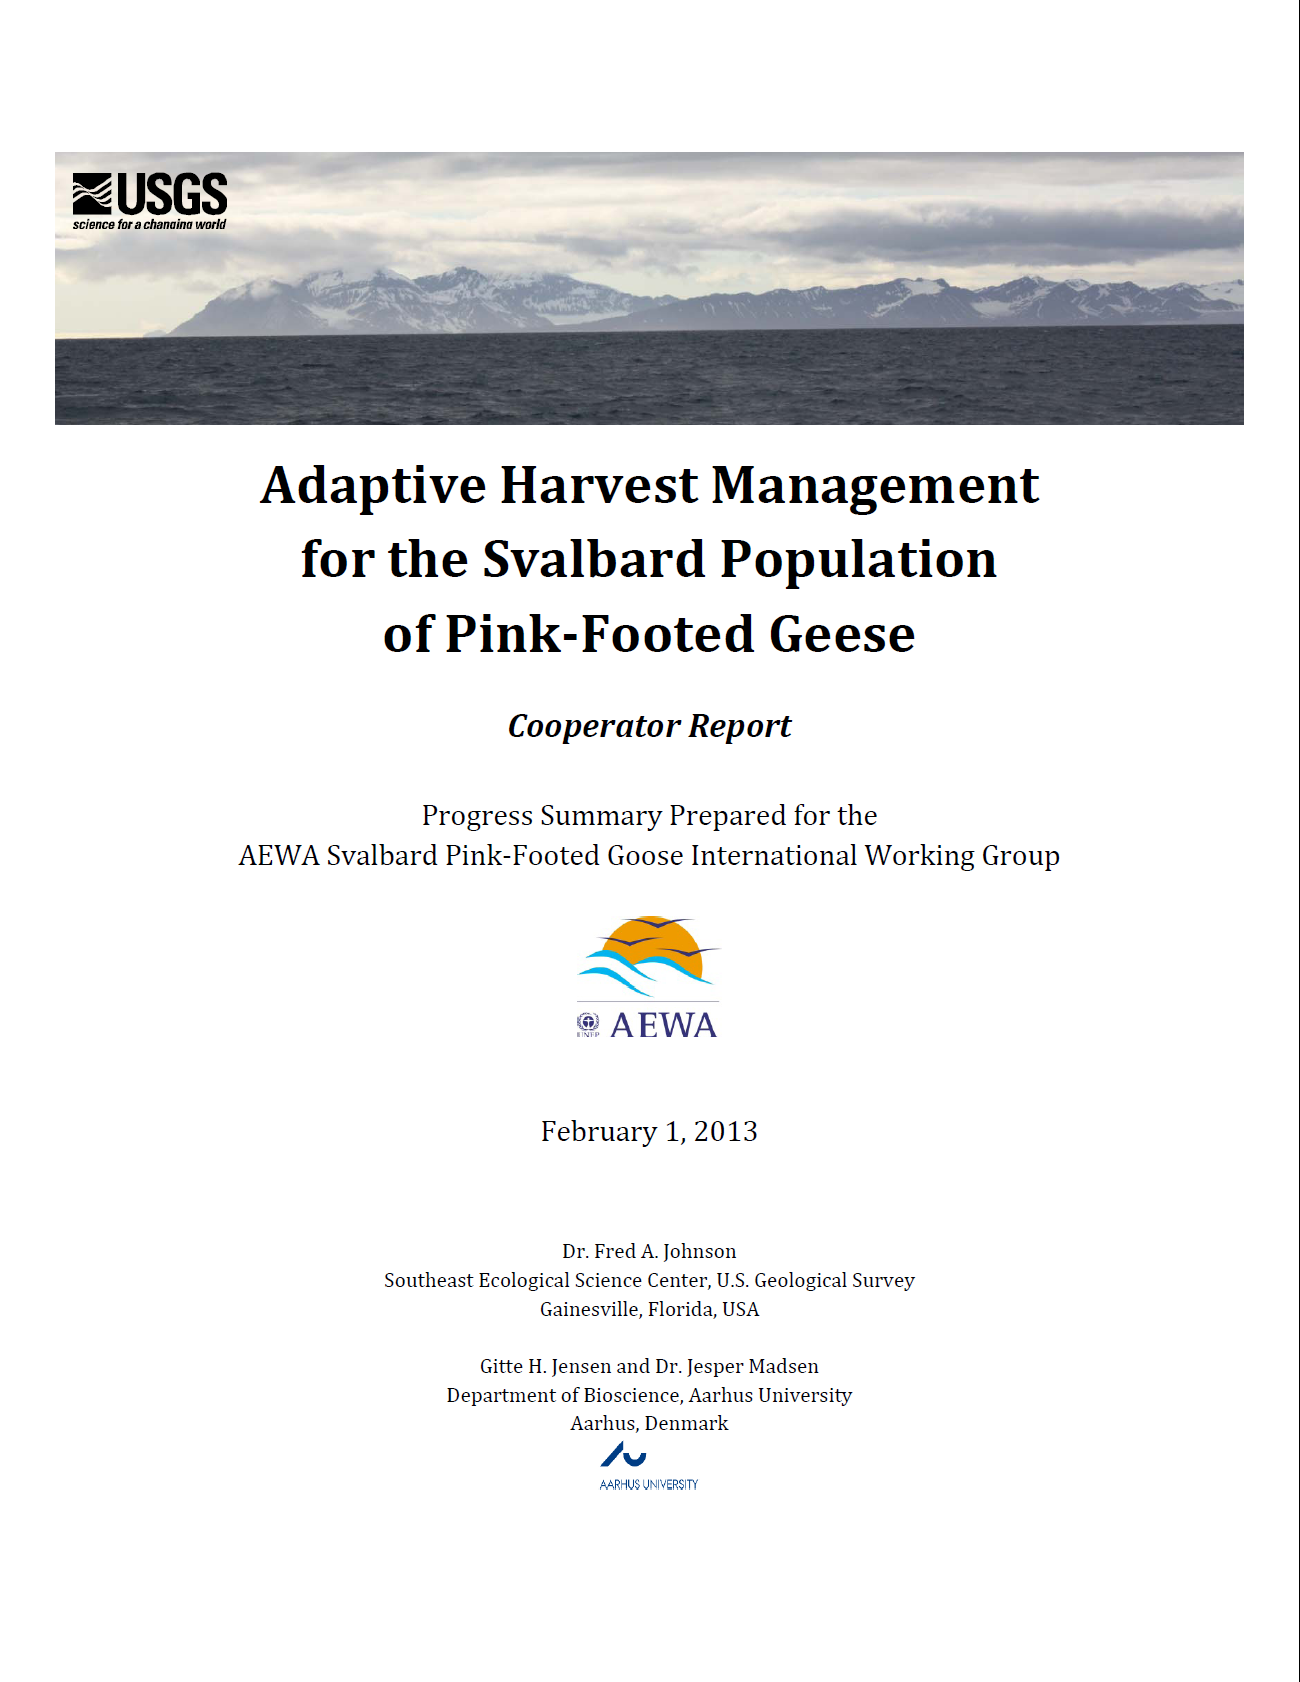 Adaptive Harvest Management Cooperator Report, front cover